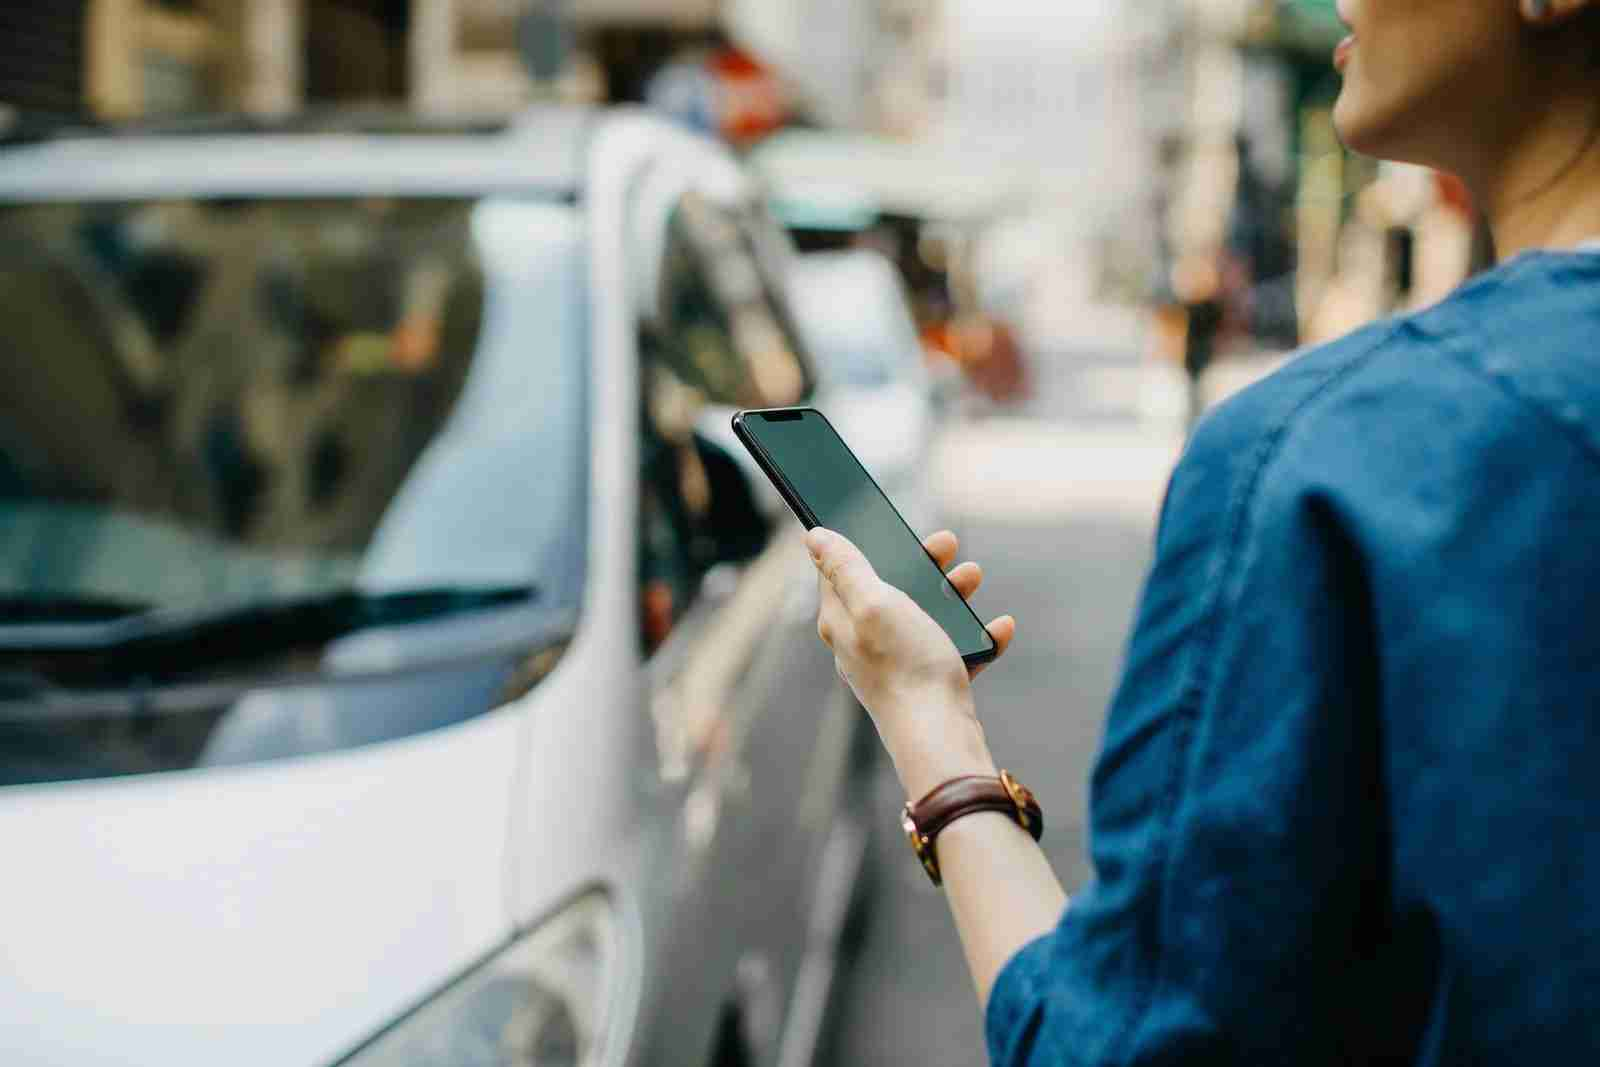 If you have both cards, the rideshare world is your oyster. (Photo by d3sign/Getty Images)